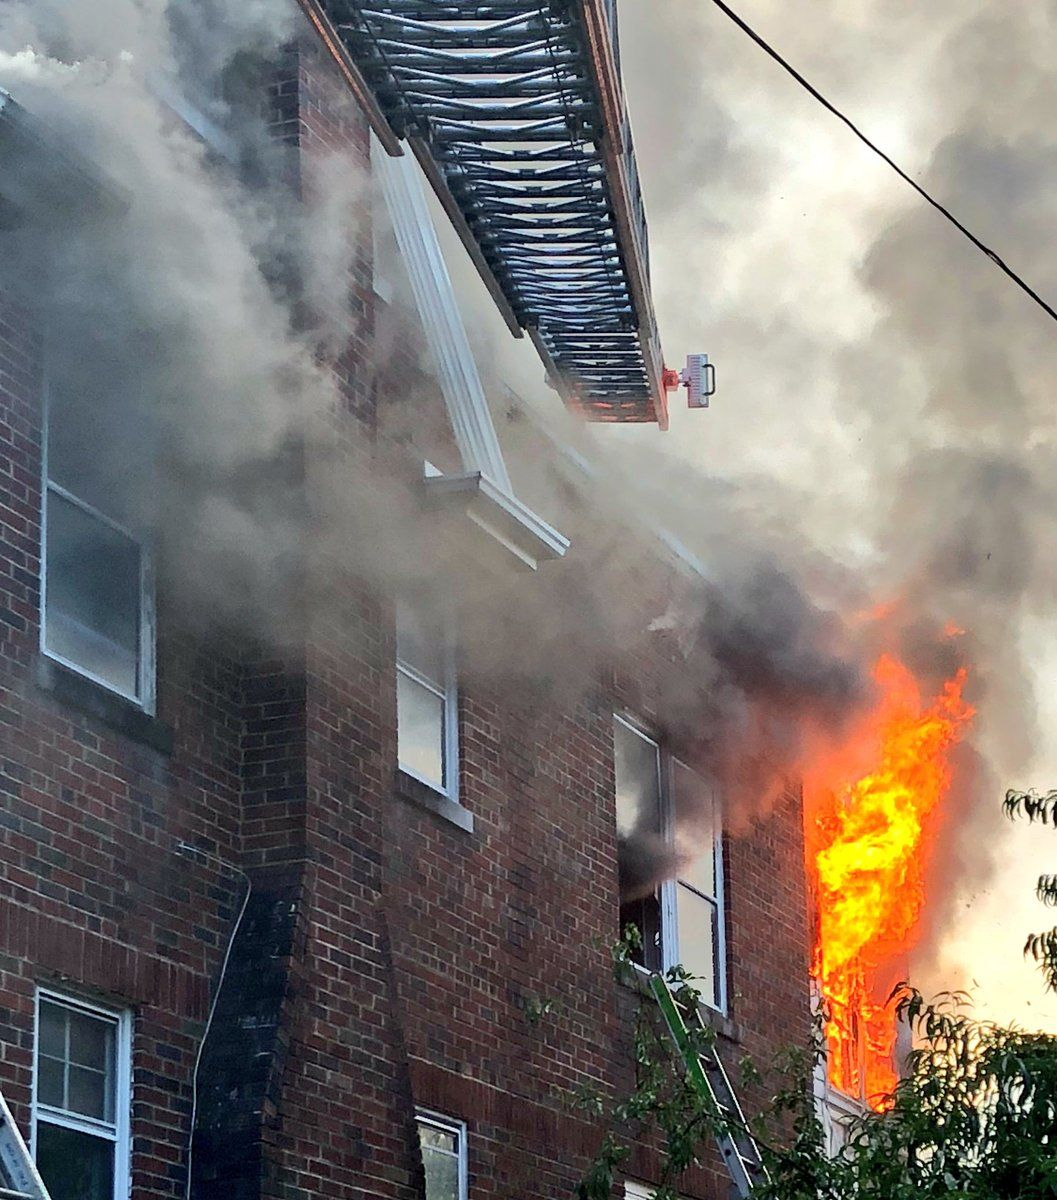 Fire officials said the blaze was accidental, caused by a malfunctioning refrigerator powered by an extension cord. (Courtesy DC Fire and EMS)